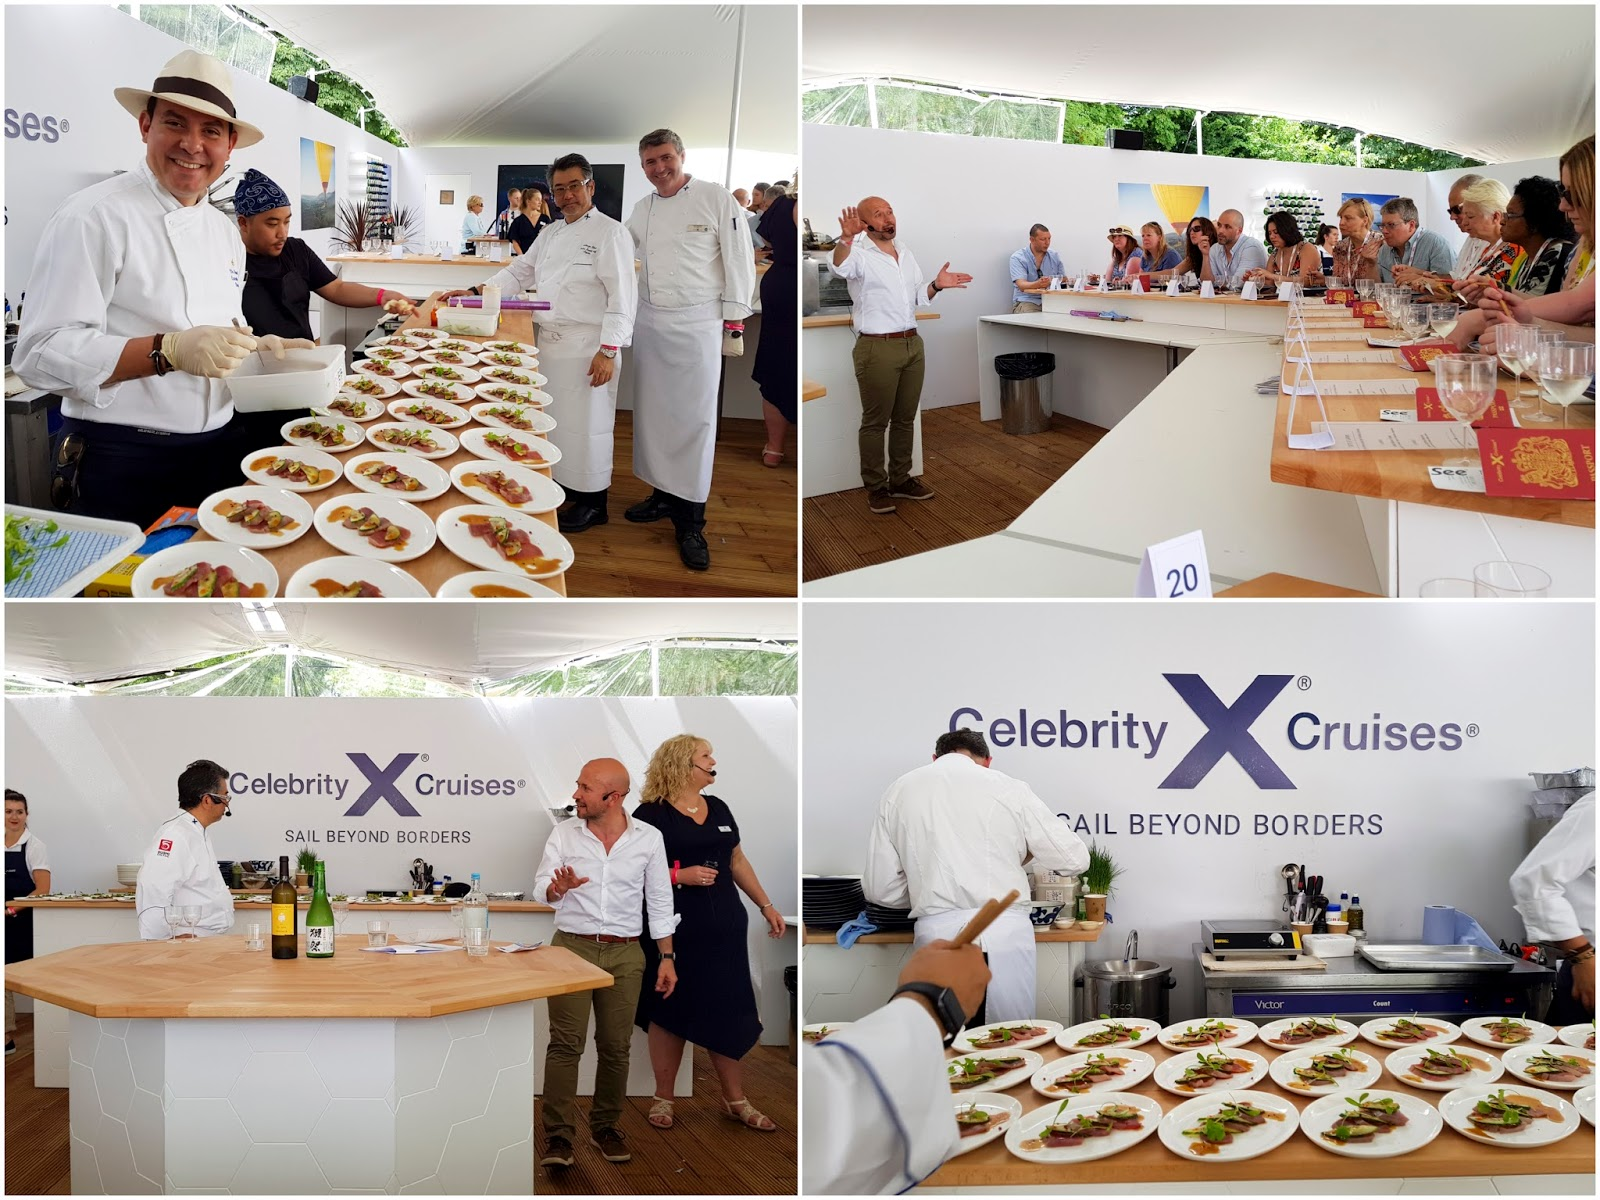 FOOD FESTIVAL | Eating With Celebrity Cruises At Taste of London